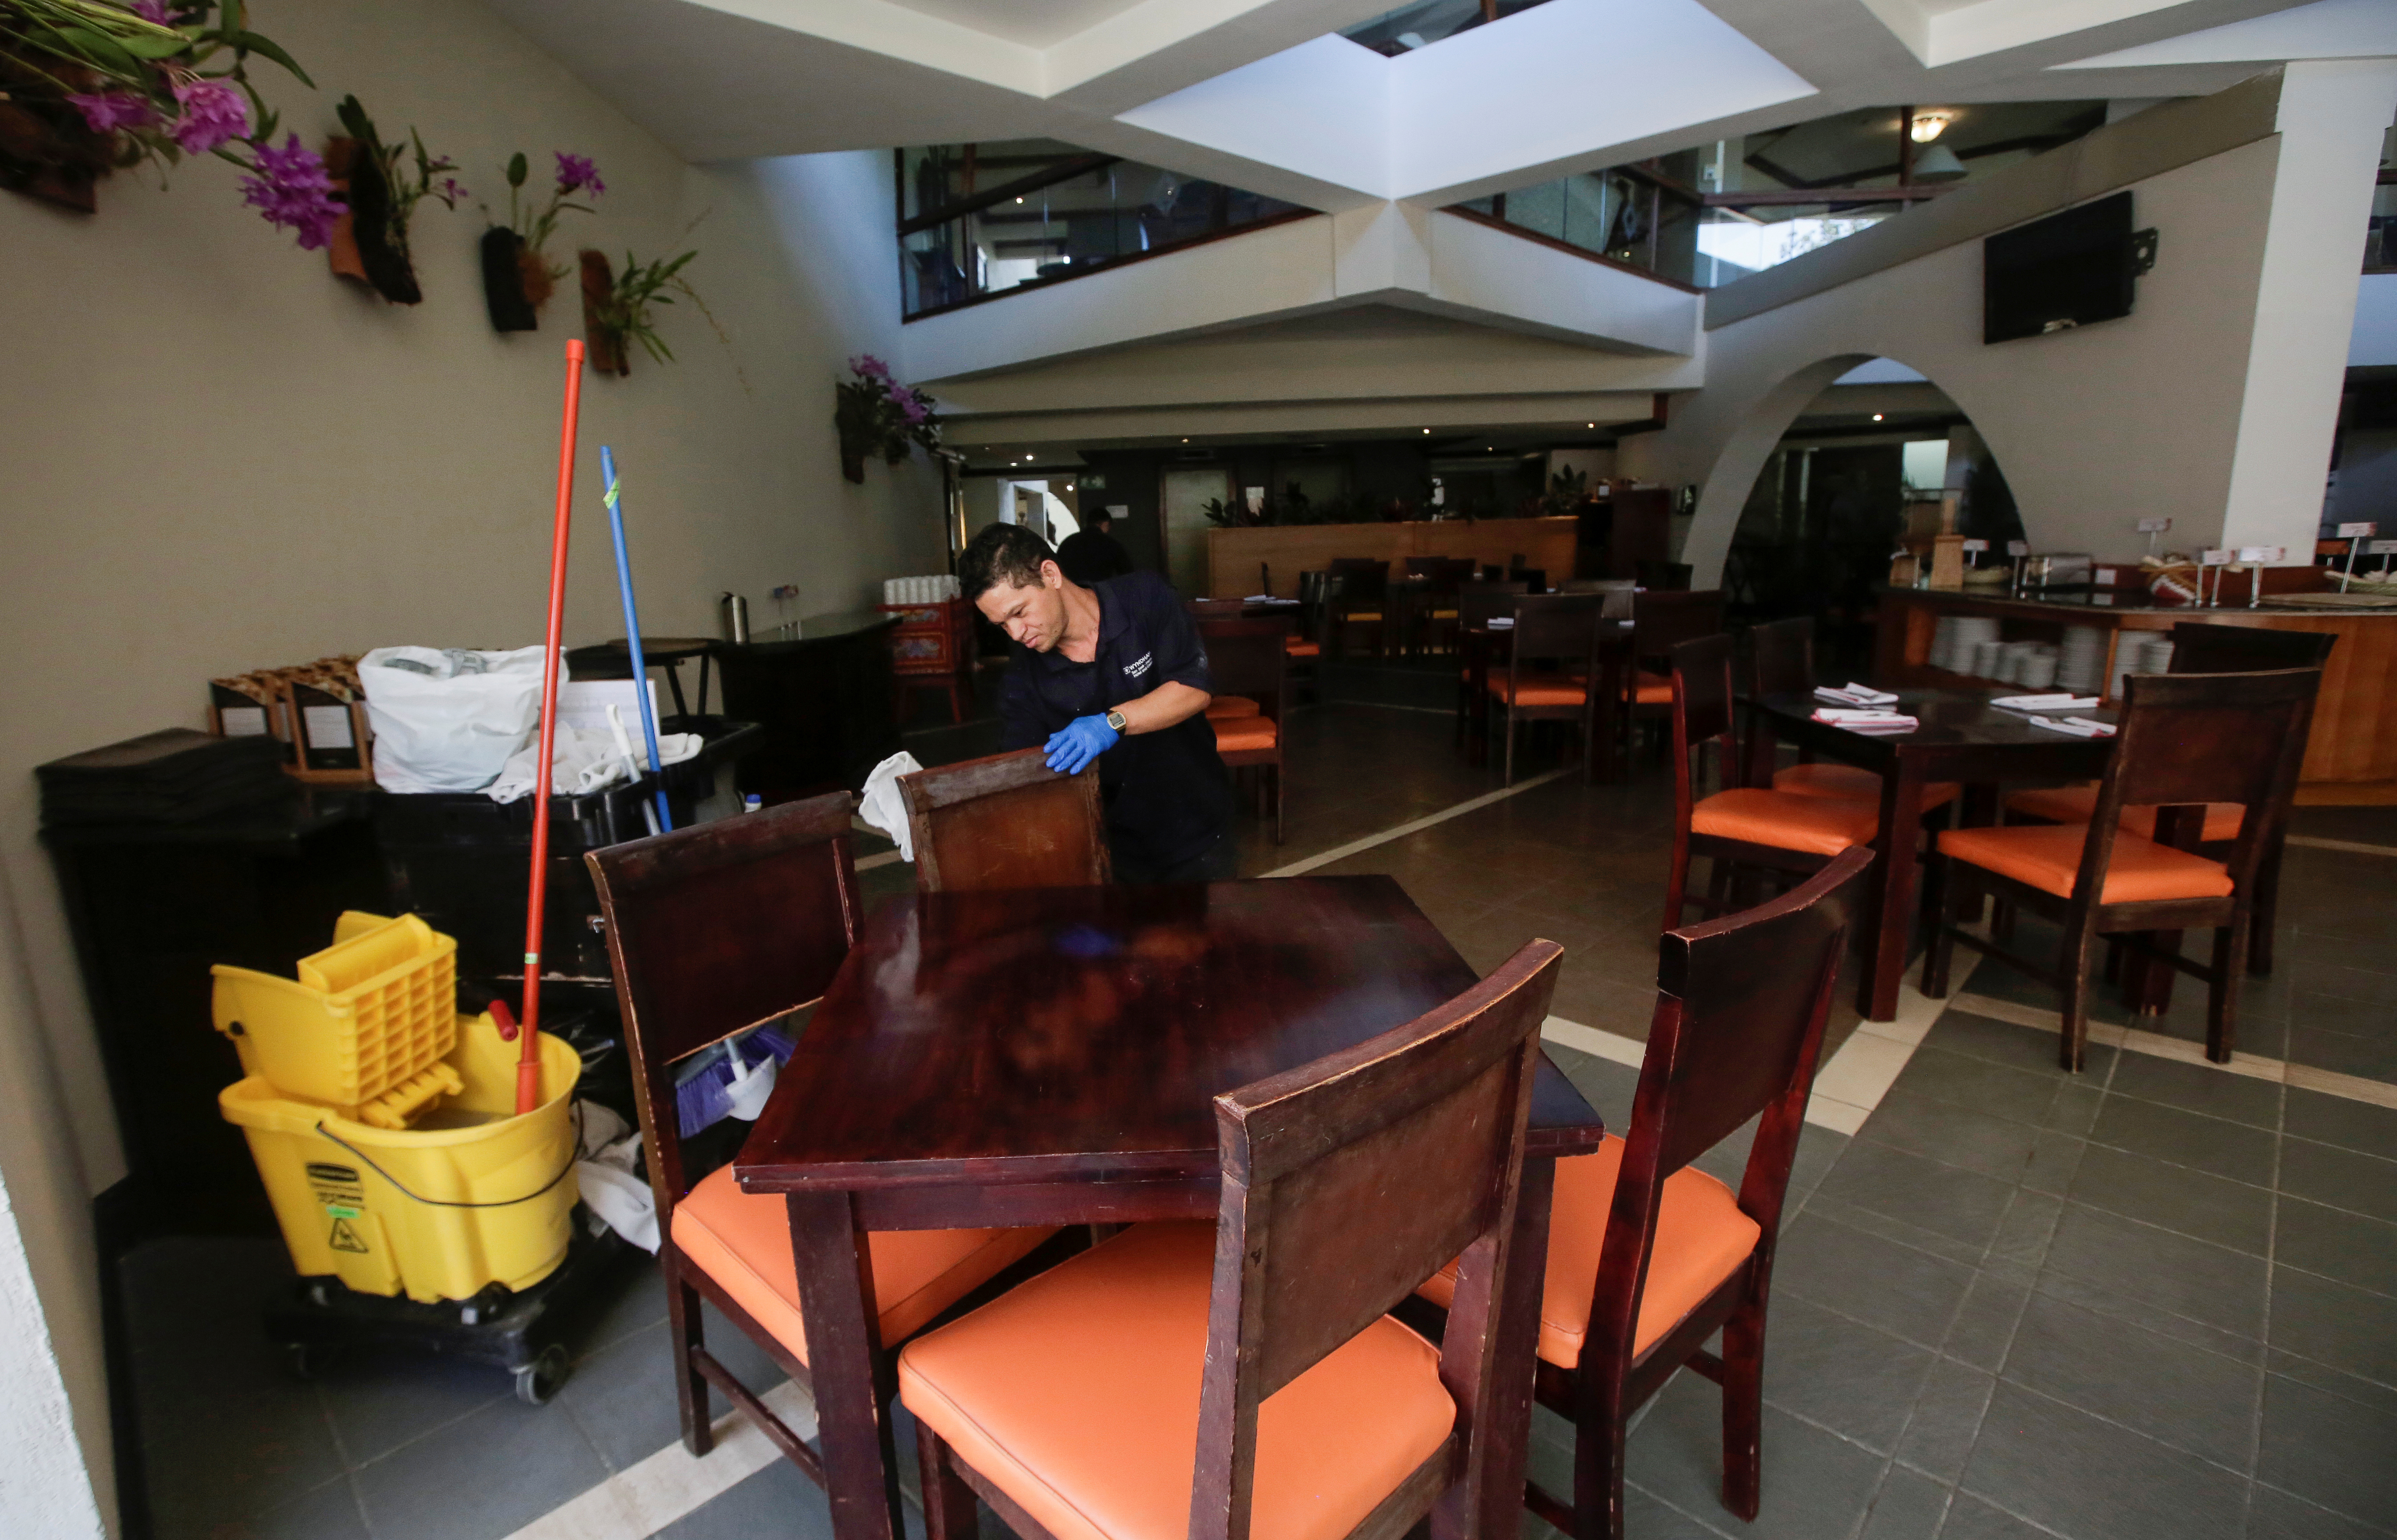 An employee cleans a restaurant chair in a hotel, as Costa Rica tourism industry braces for coronavirus disease (COVID-19) outbreak, in Heredia, Costa Rica March 18, 2020. Picture taken March 18,2020. REUTERS/Juan Carlos Ulate